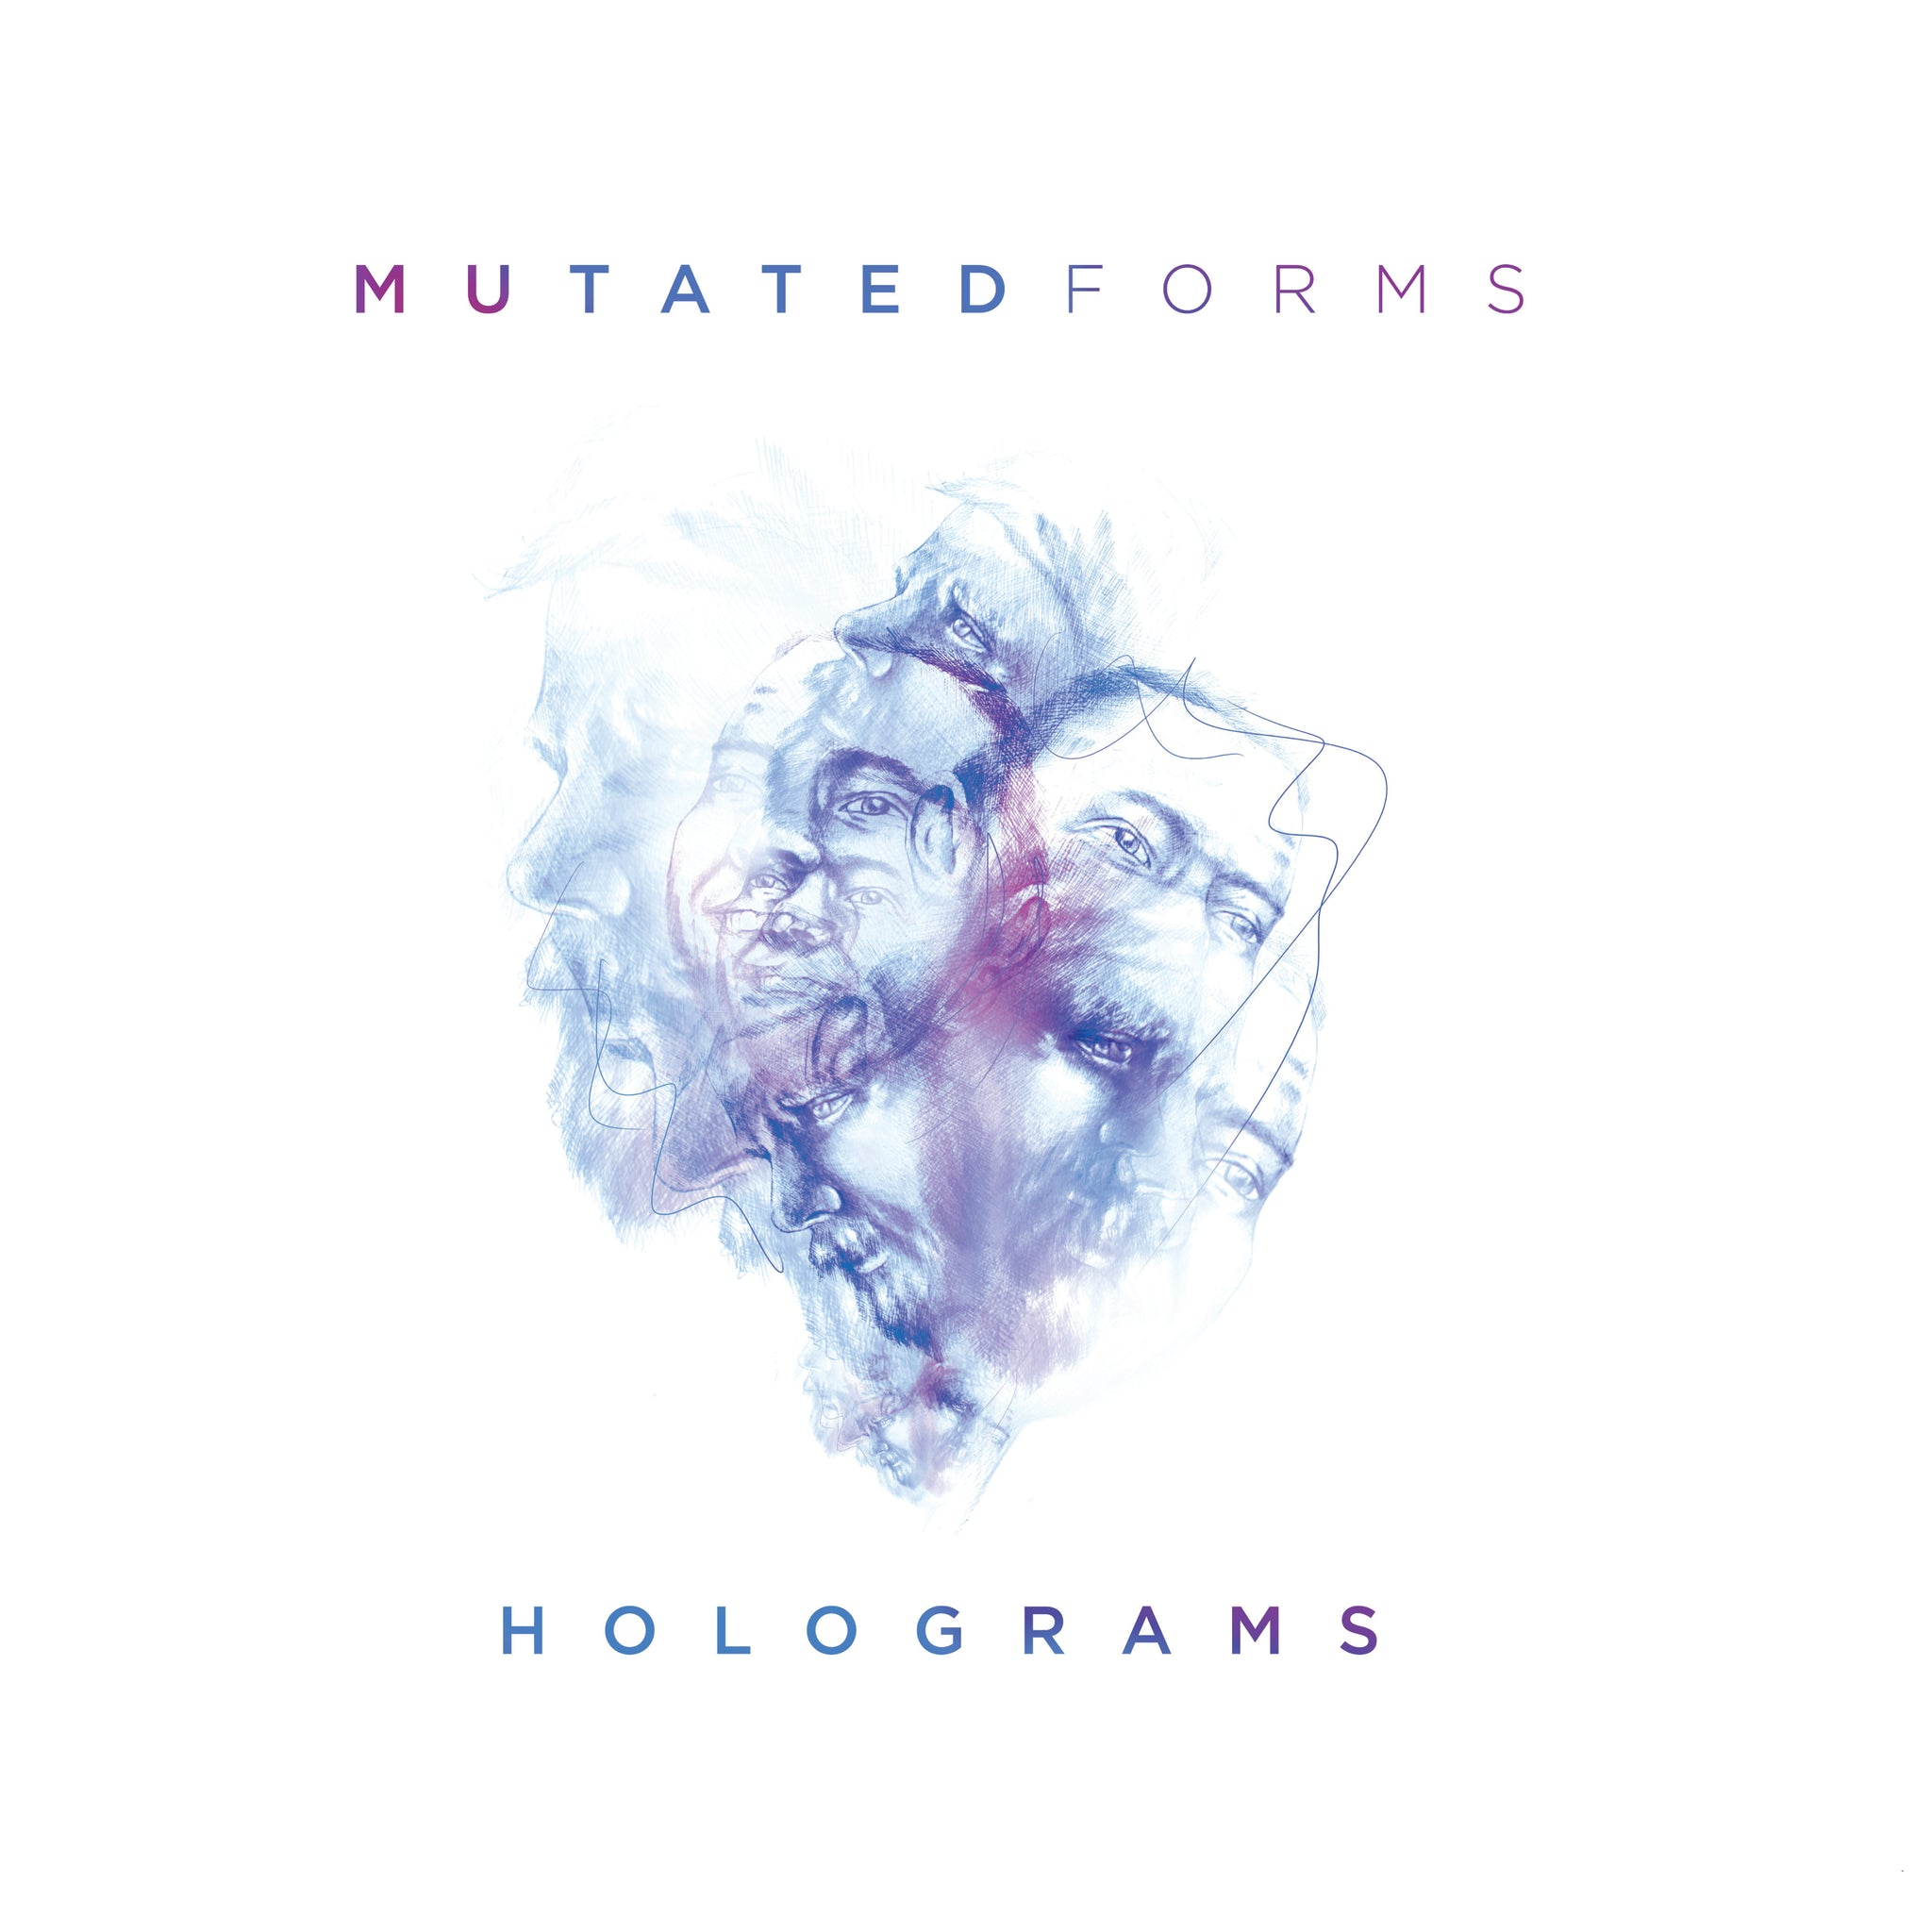 SPEAR073 - Mutated Forms - Holograms LP - CD & MP3